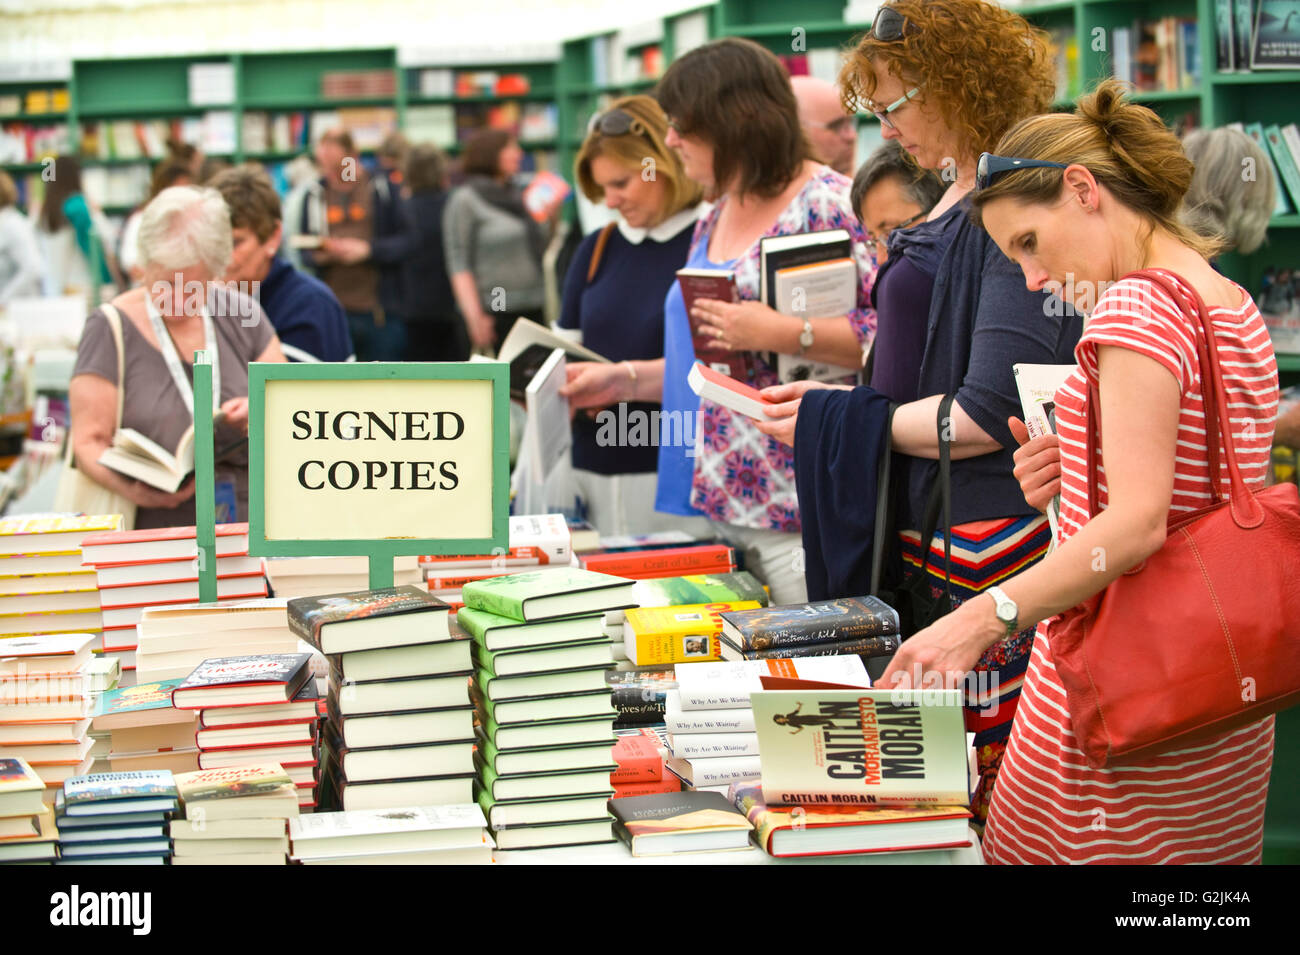 Women browsing author signed copies of books in the bookshop at Hay Festival 2016 - Stock Image